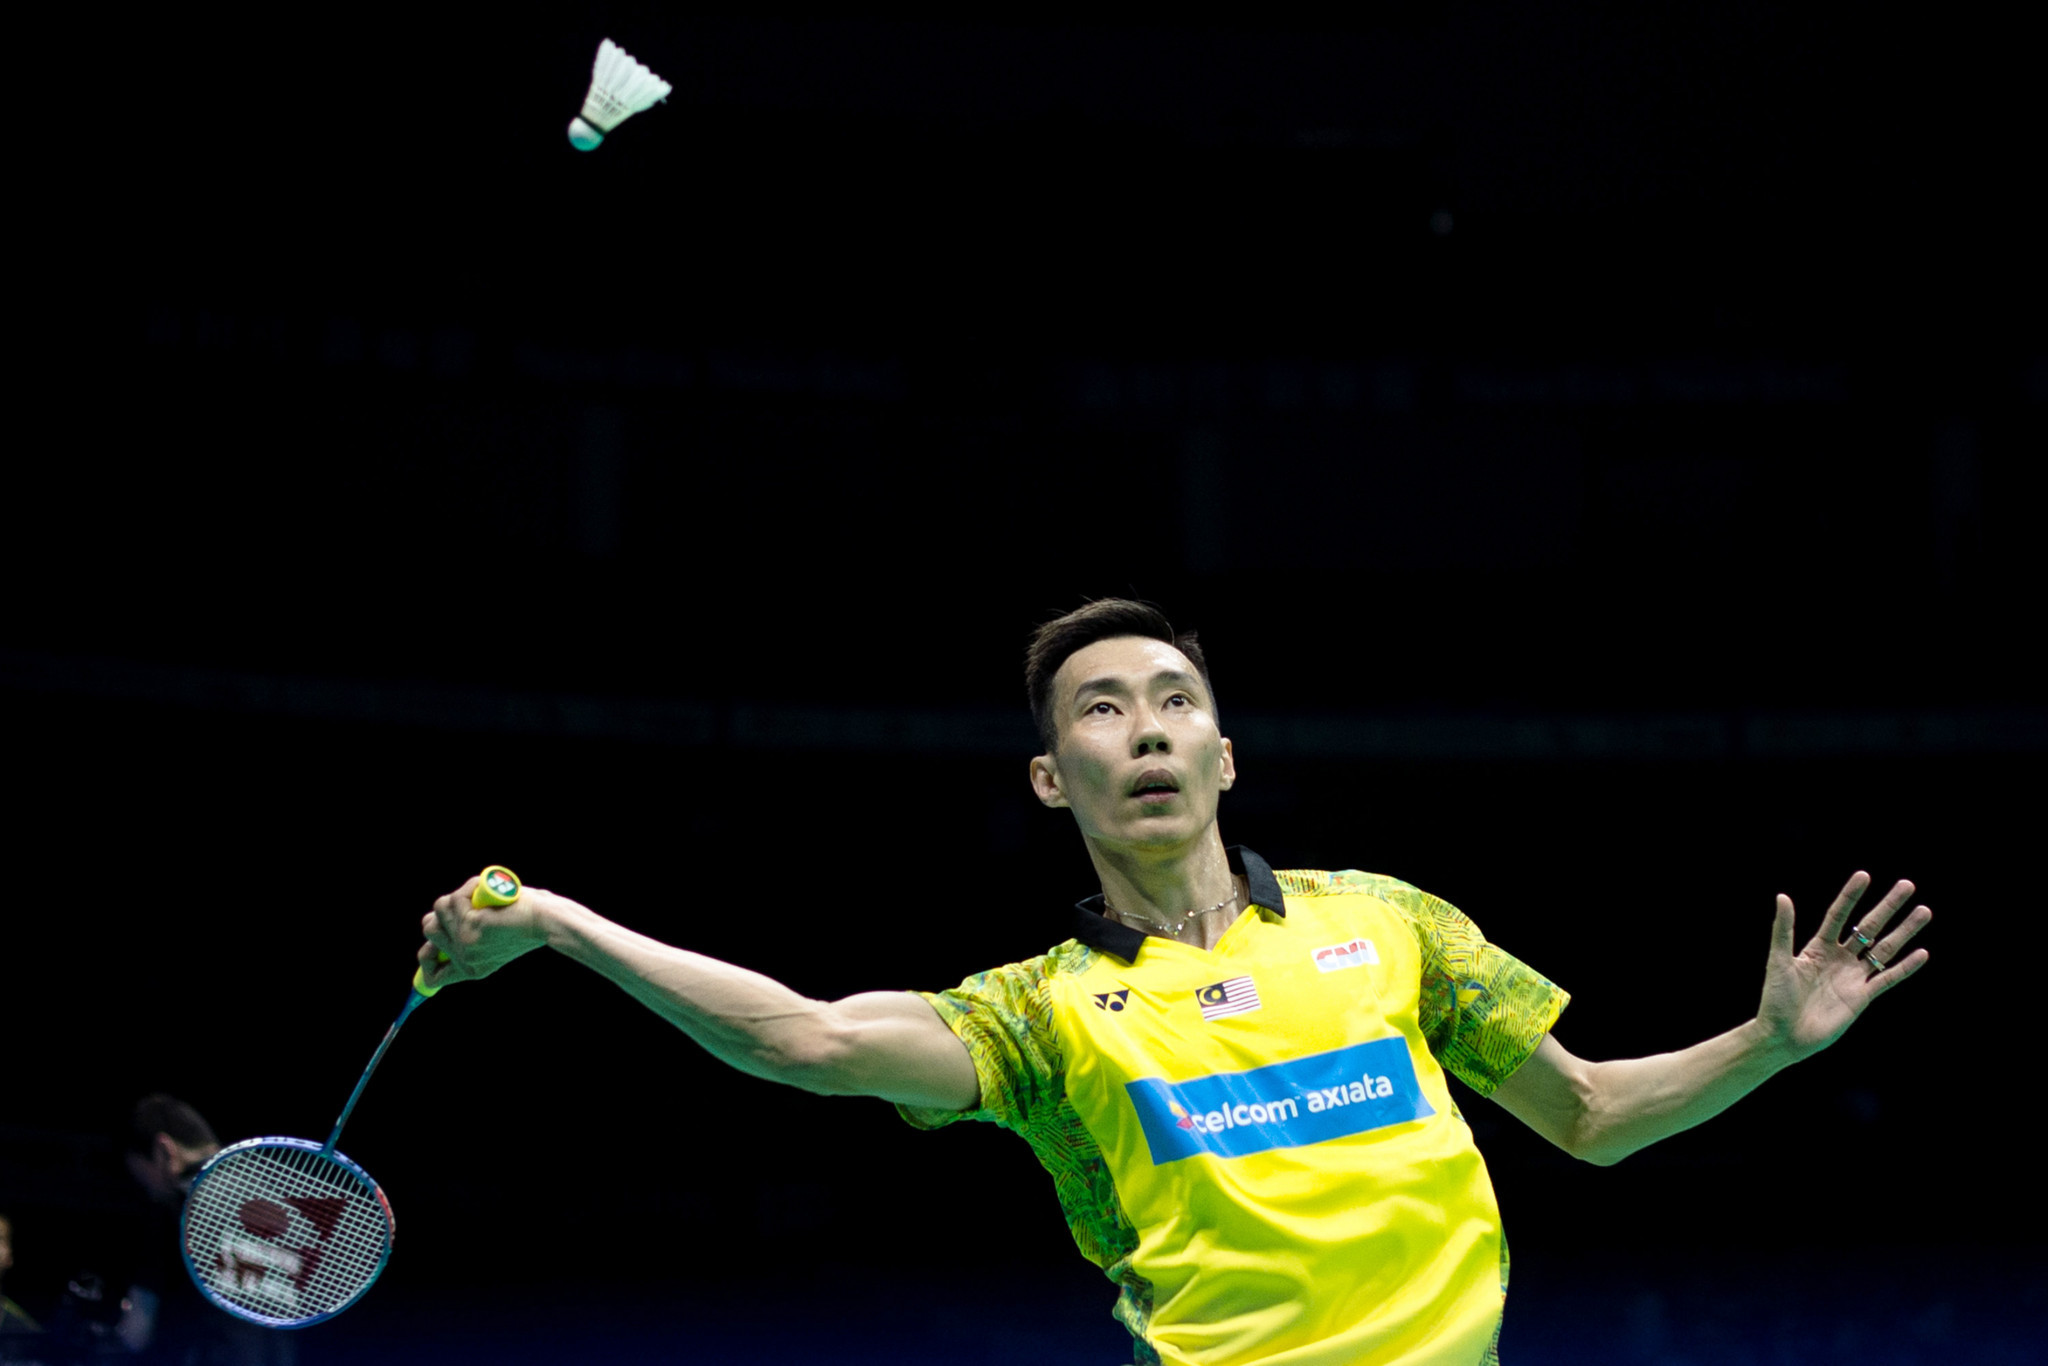 Lee ousts top seed Kidambi to reach semi-finals of Badminton Asia Championships